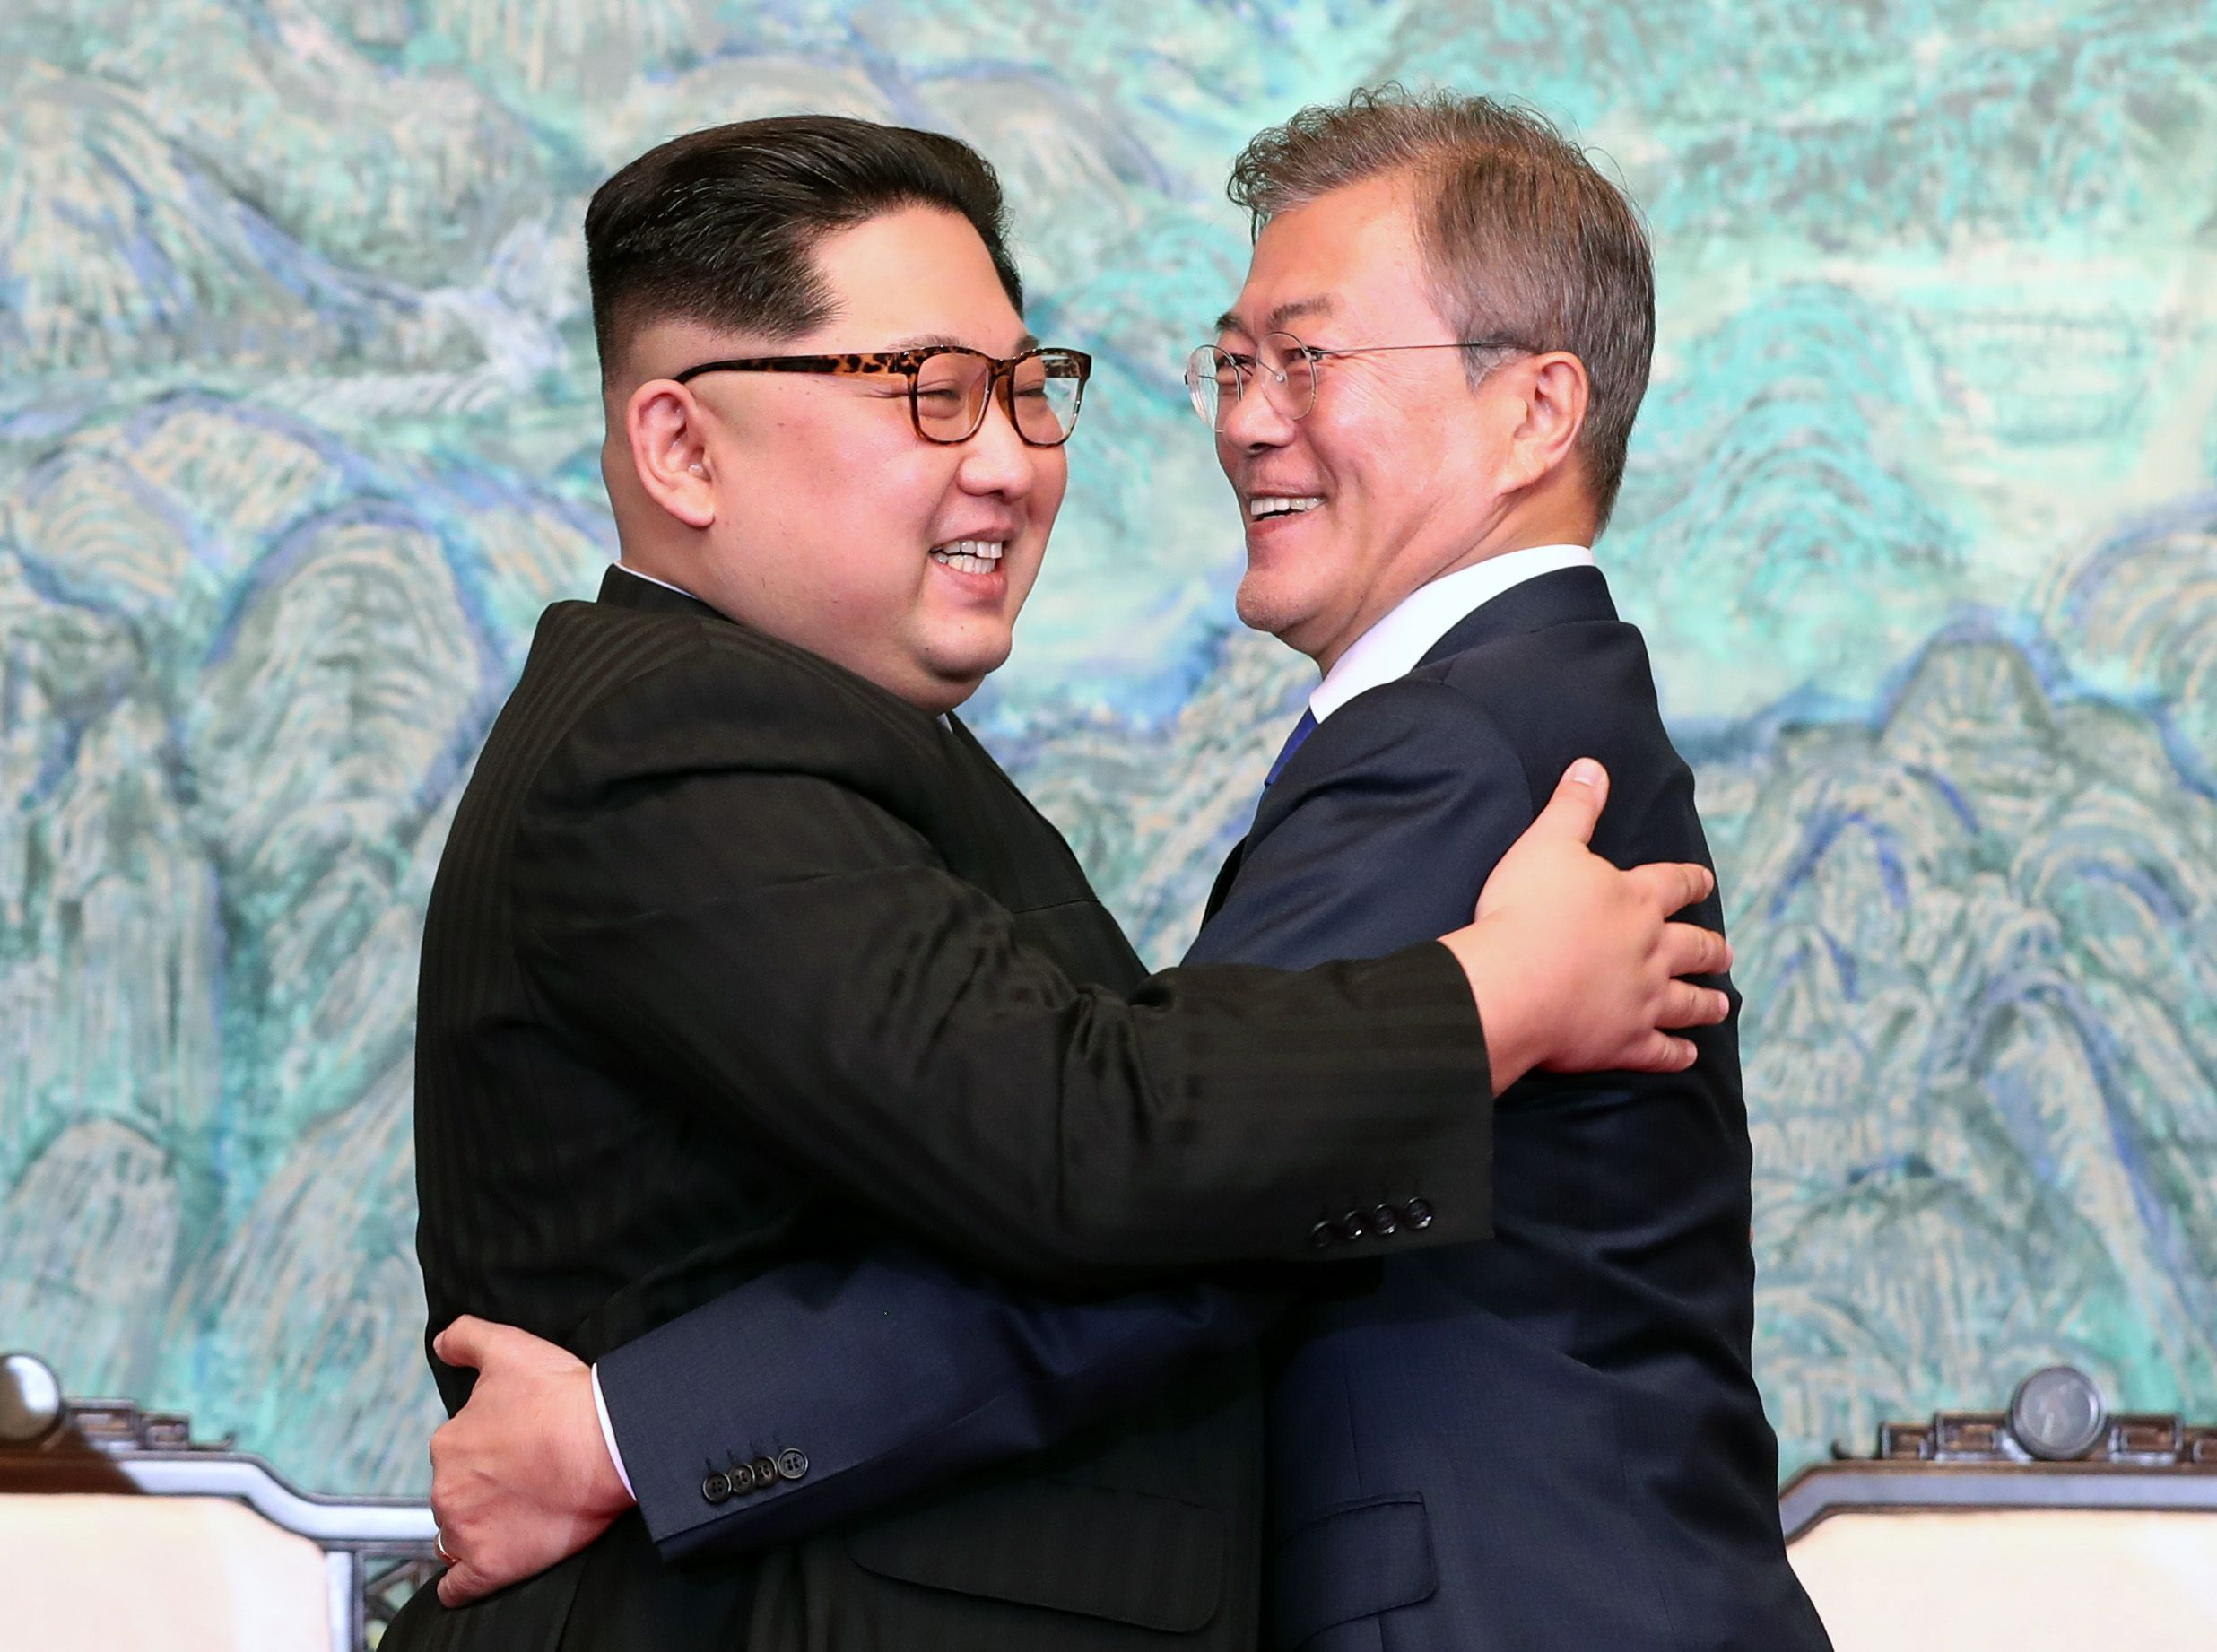 Kim Jong-un and Moon Jae-in hug each other before a blue-green background.